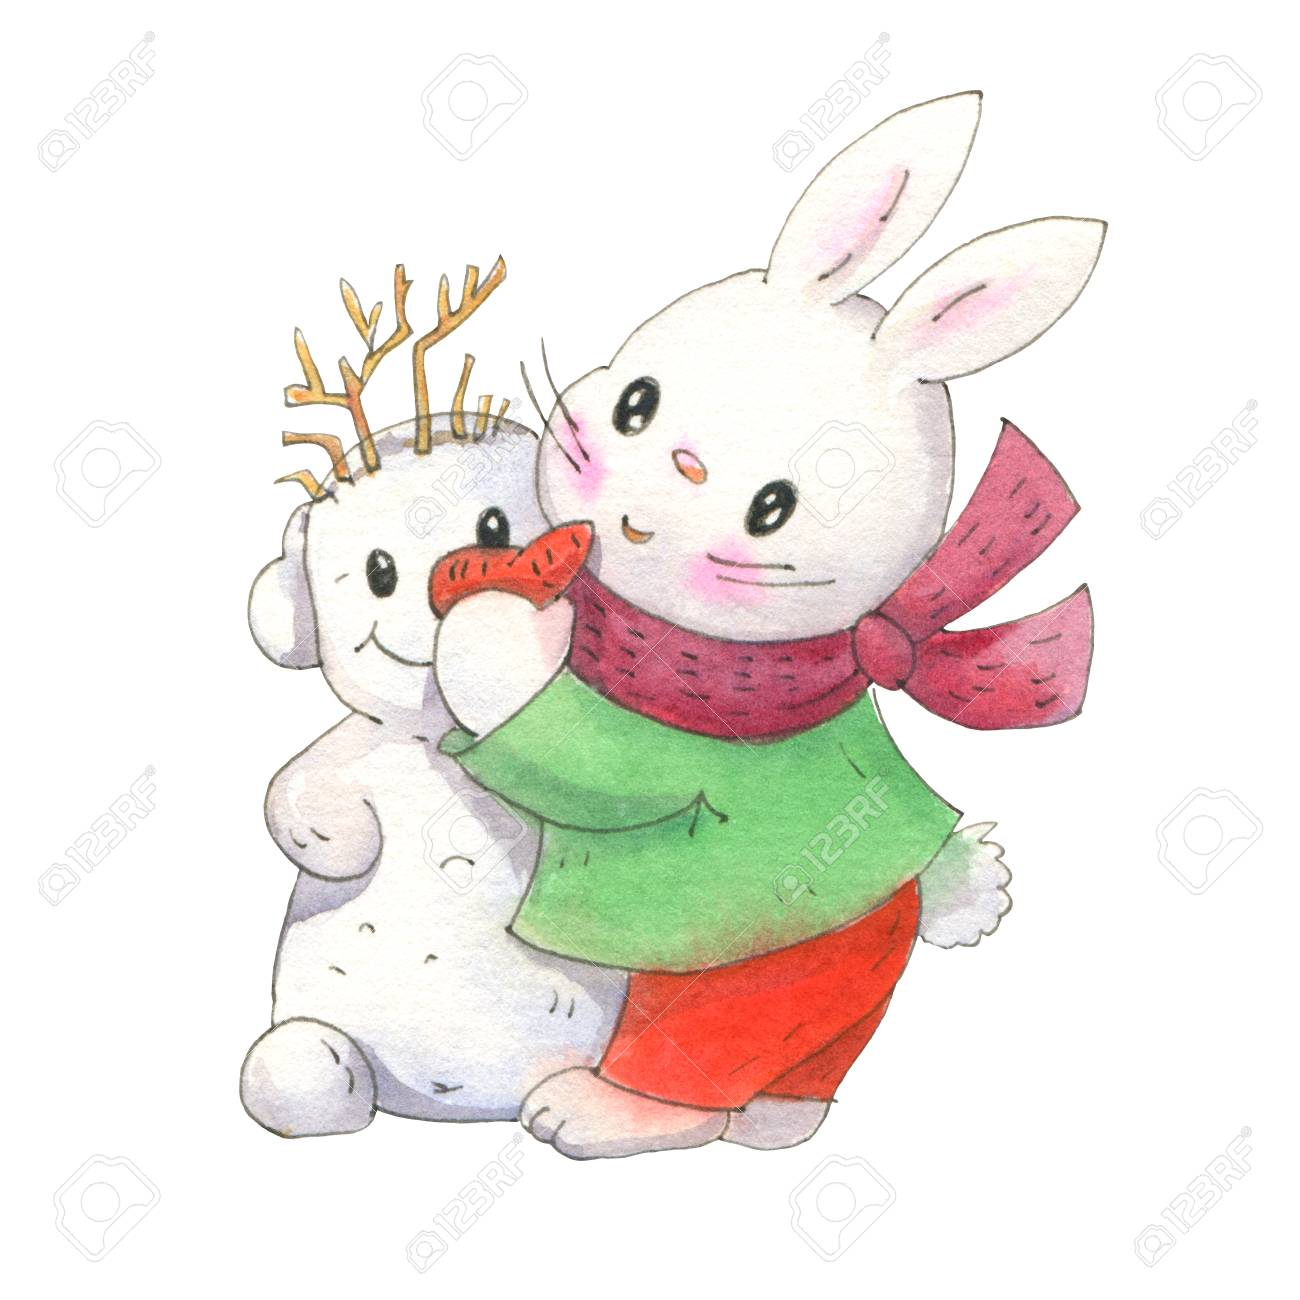 Ð ute bunny with a snowman isolated on a white background drawing